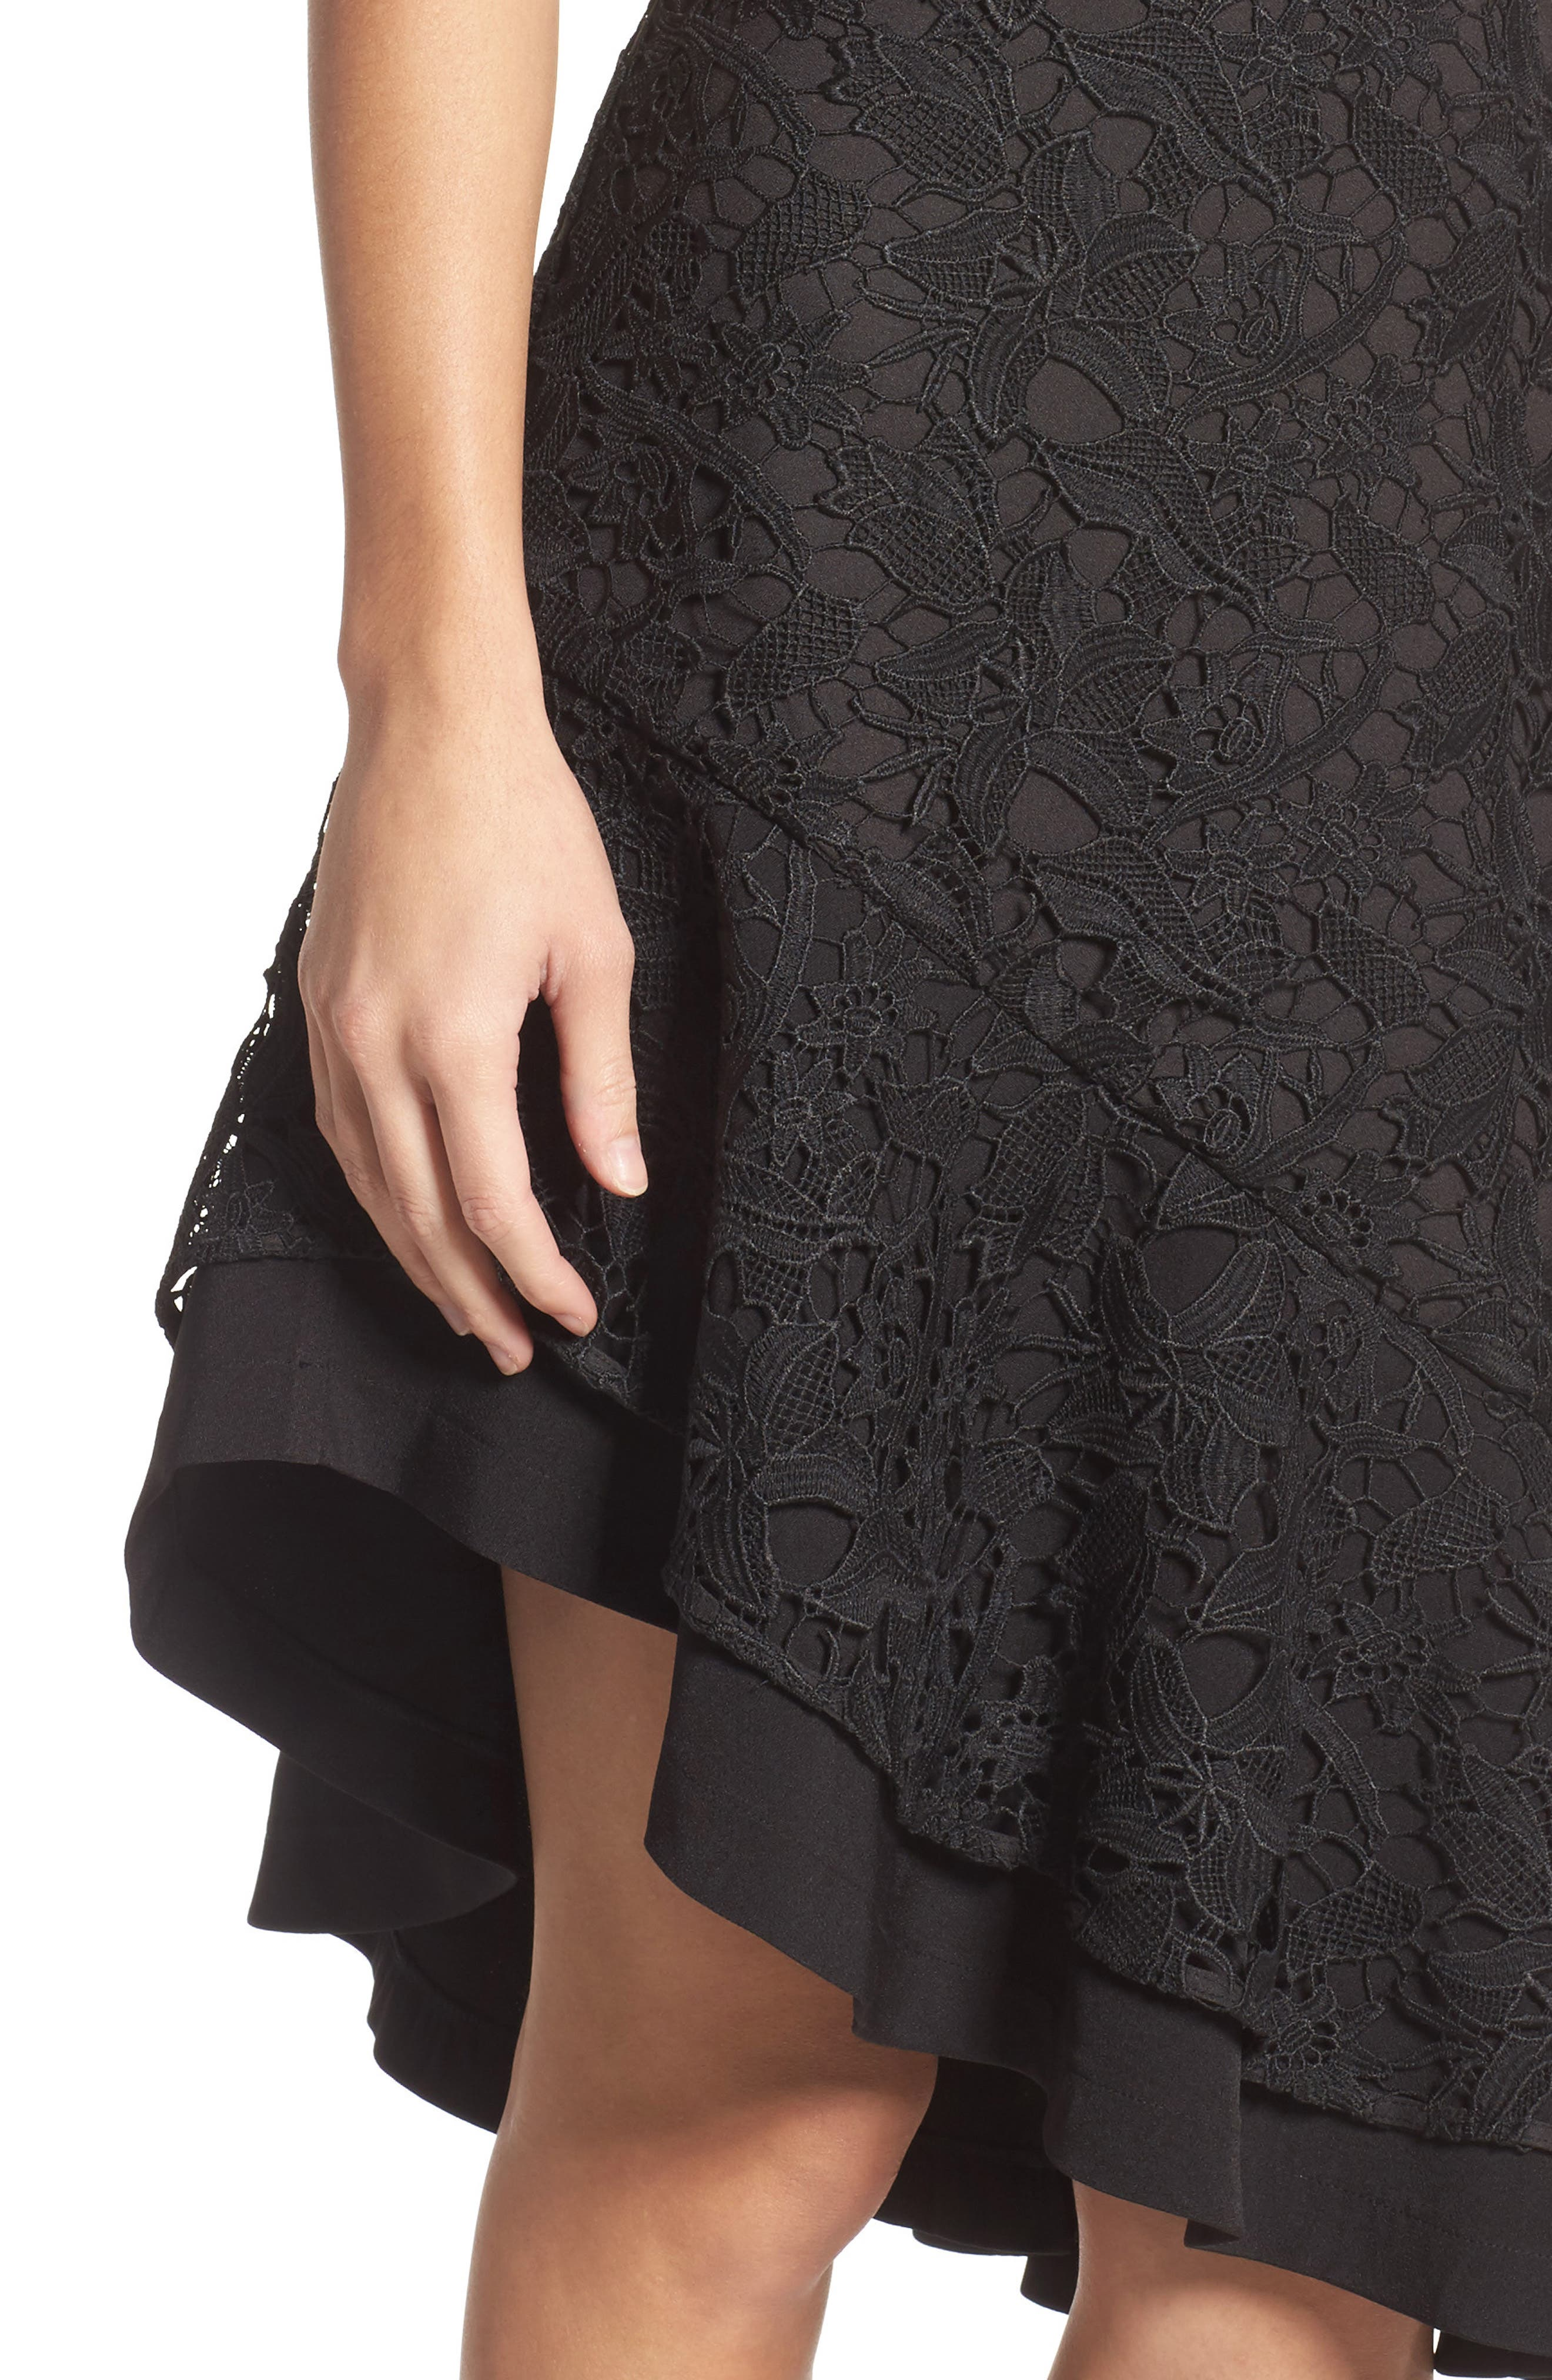 Lace Asymmetrical Dress,                             Alternate thumbnail 4, color,                             Black